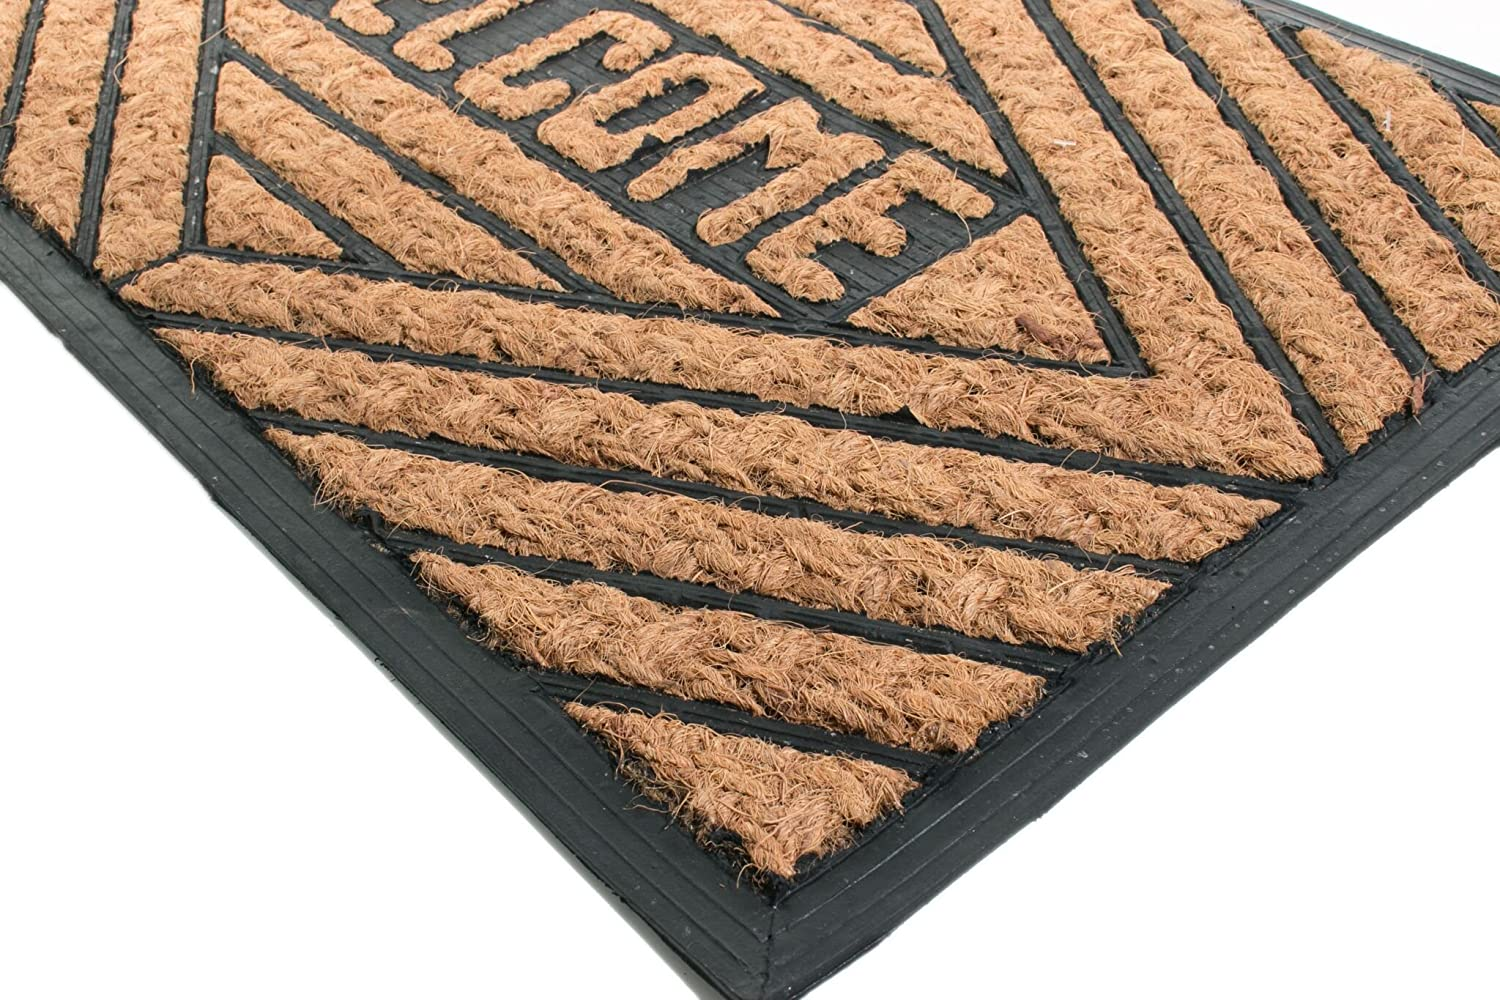 Lily Imports Decor Half Round Rubber Back Coir Doormat 18-Inch by 30-Inch